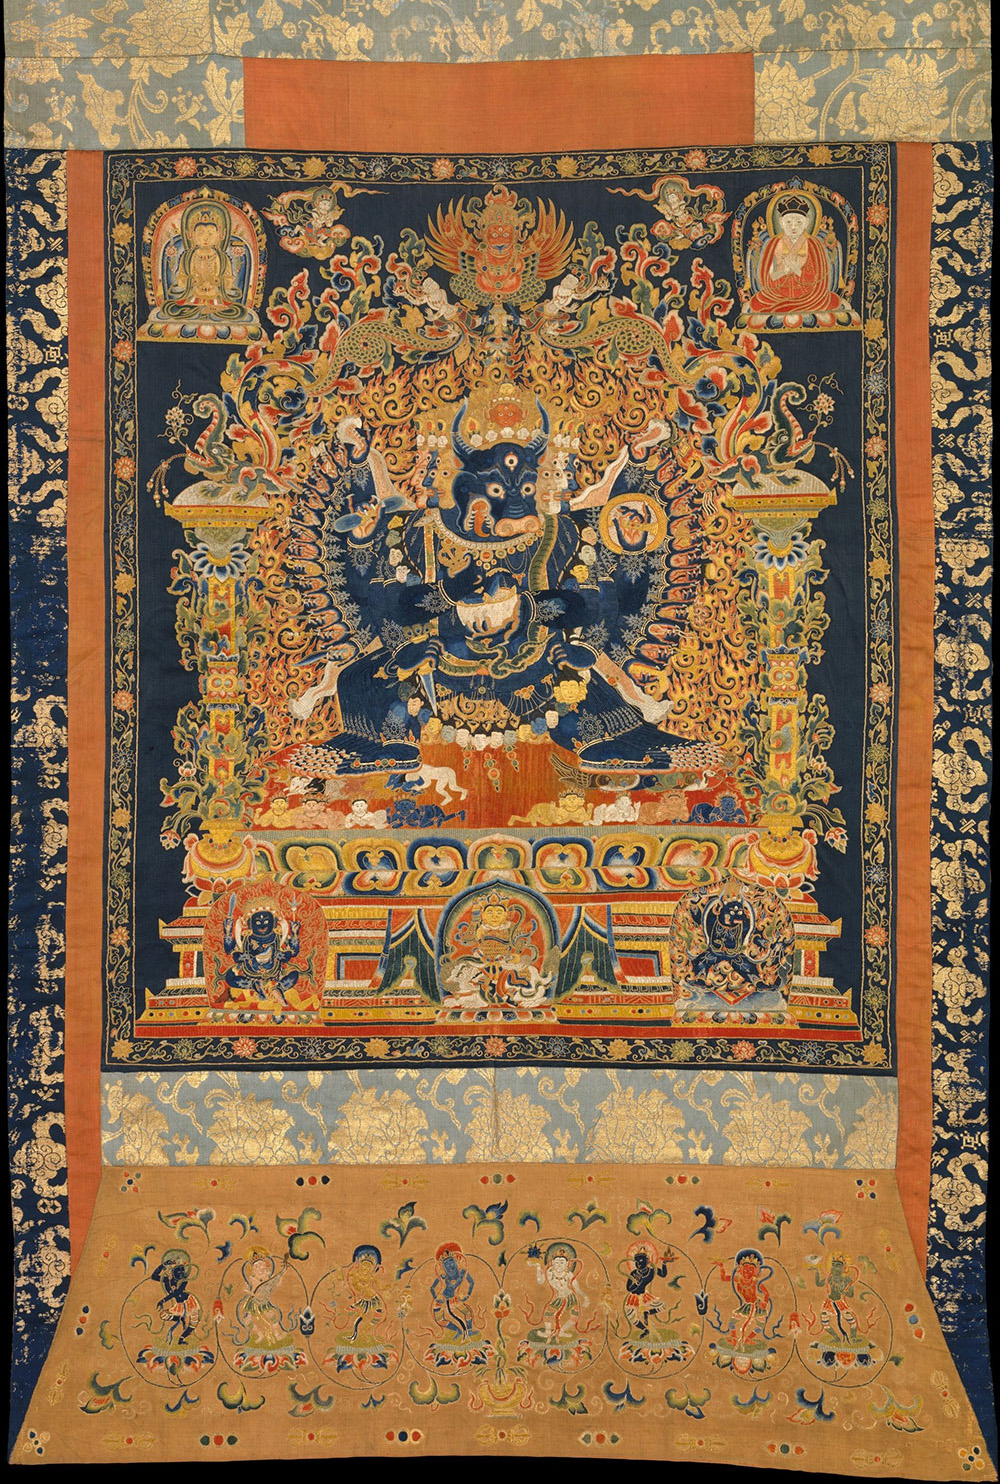 Embroidered Thangka from 'Sacred Traditions of the Himalayas' at the Metropolitan Museum of Art